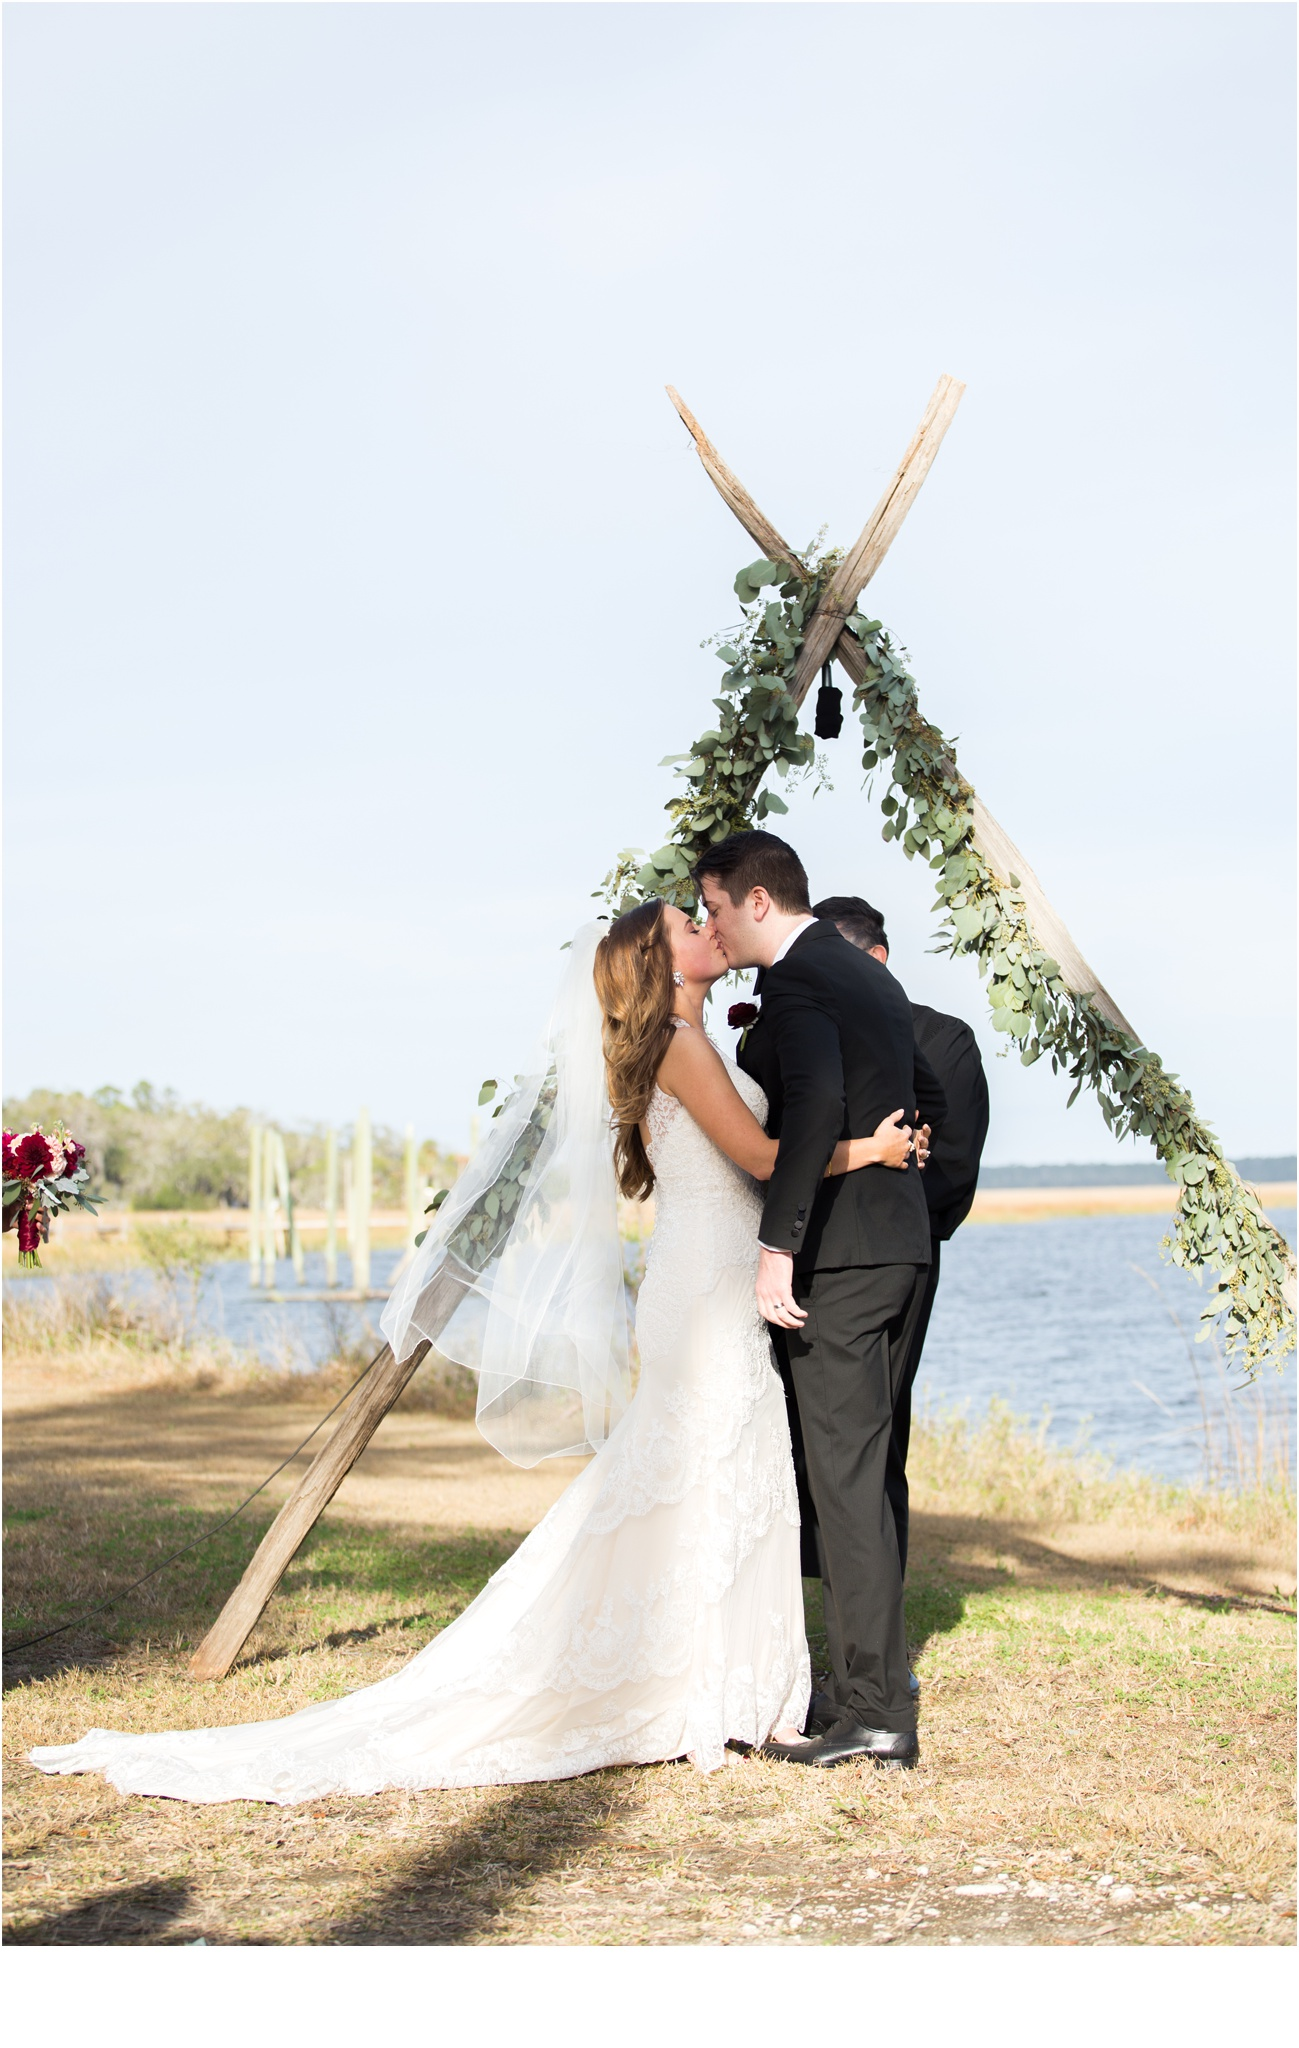 Rainey_Gregg_Photography_St._Simons_Island_Georgia_California_Wedding_Portrait_Photography_0820.jpg